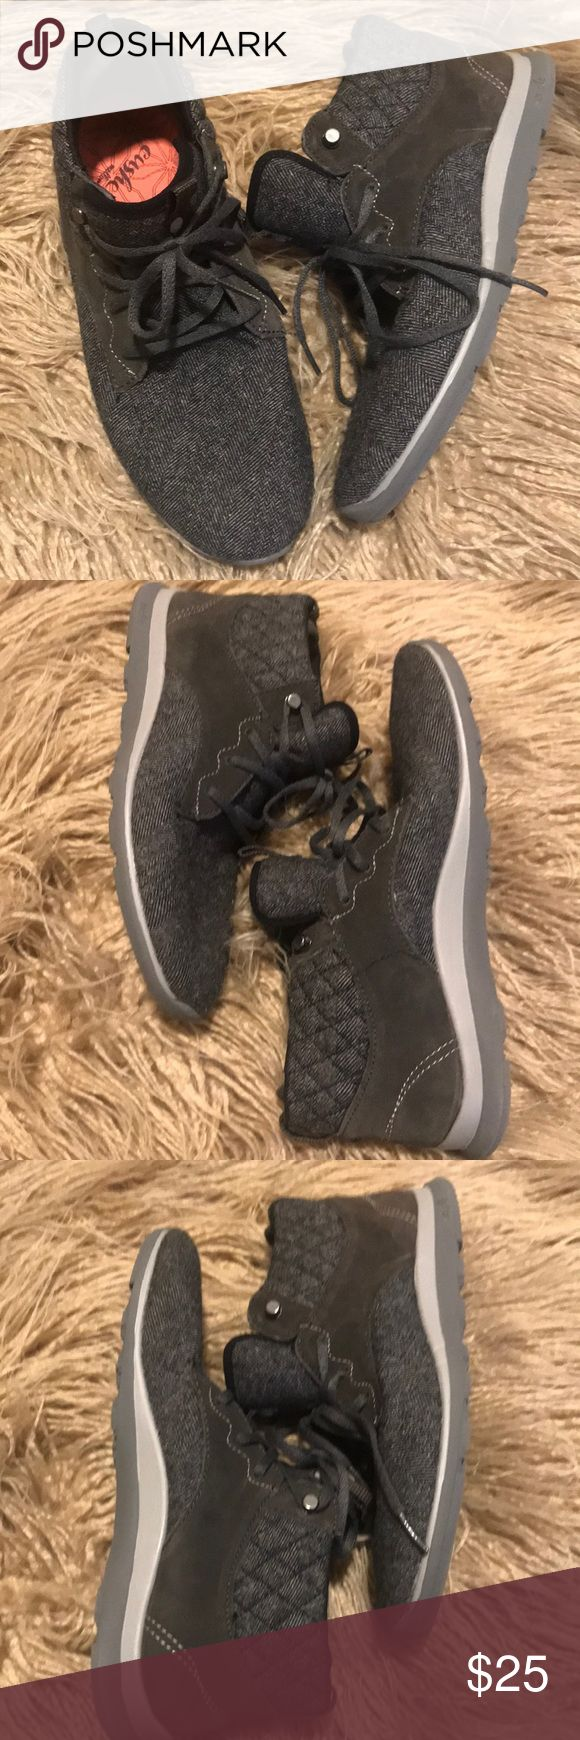 Cushe Herringbone Tennis Shoes (Brand new) Size 8. These have never been worn. Cushe shoes have been discontinued, and these are literally the comfiest shoes ever. EXTREMELY light weight. This print matches everything! Dark gray in color. Cushe Shoes Sneakers